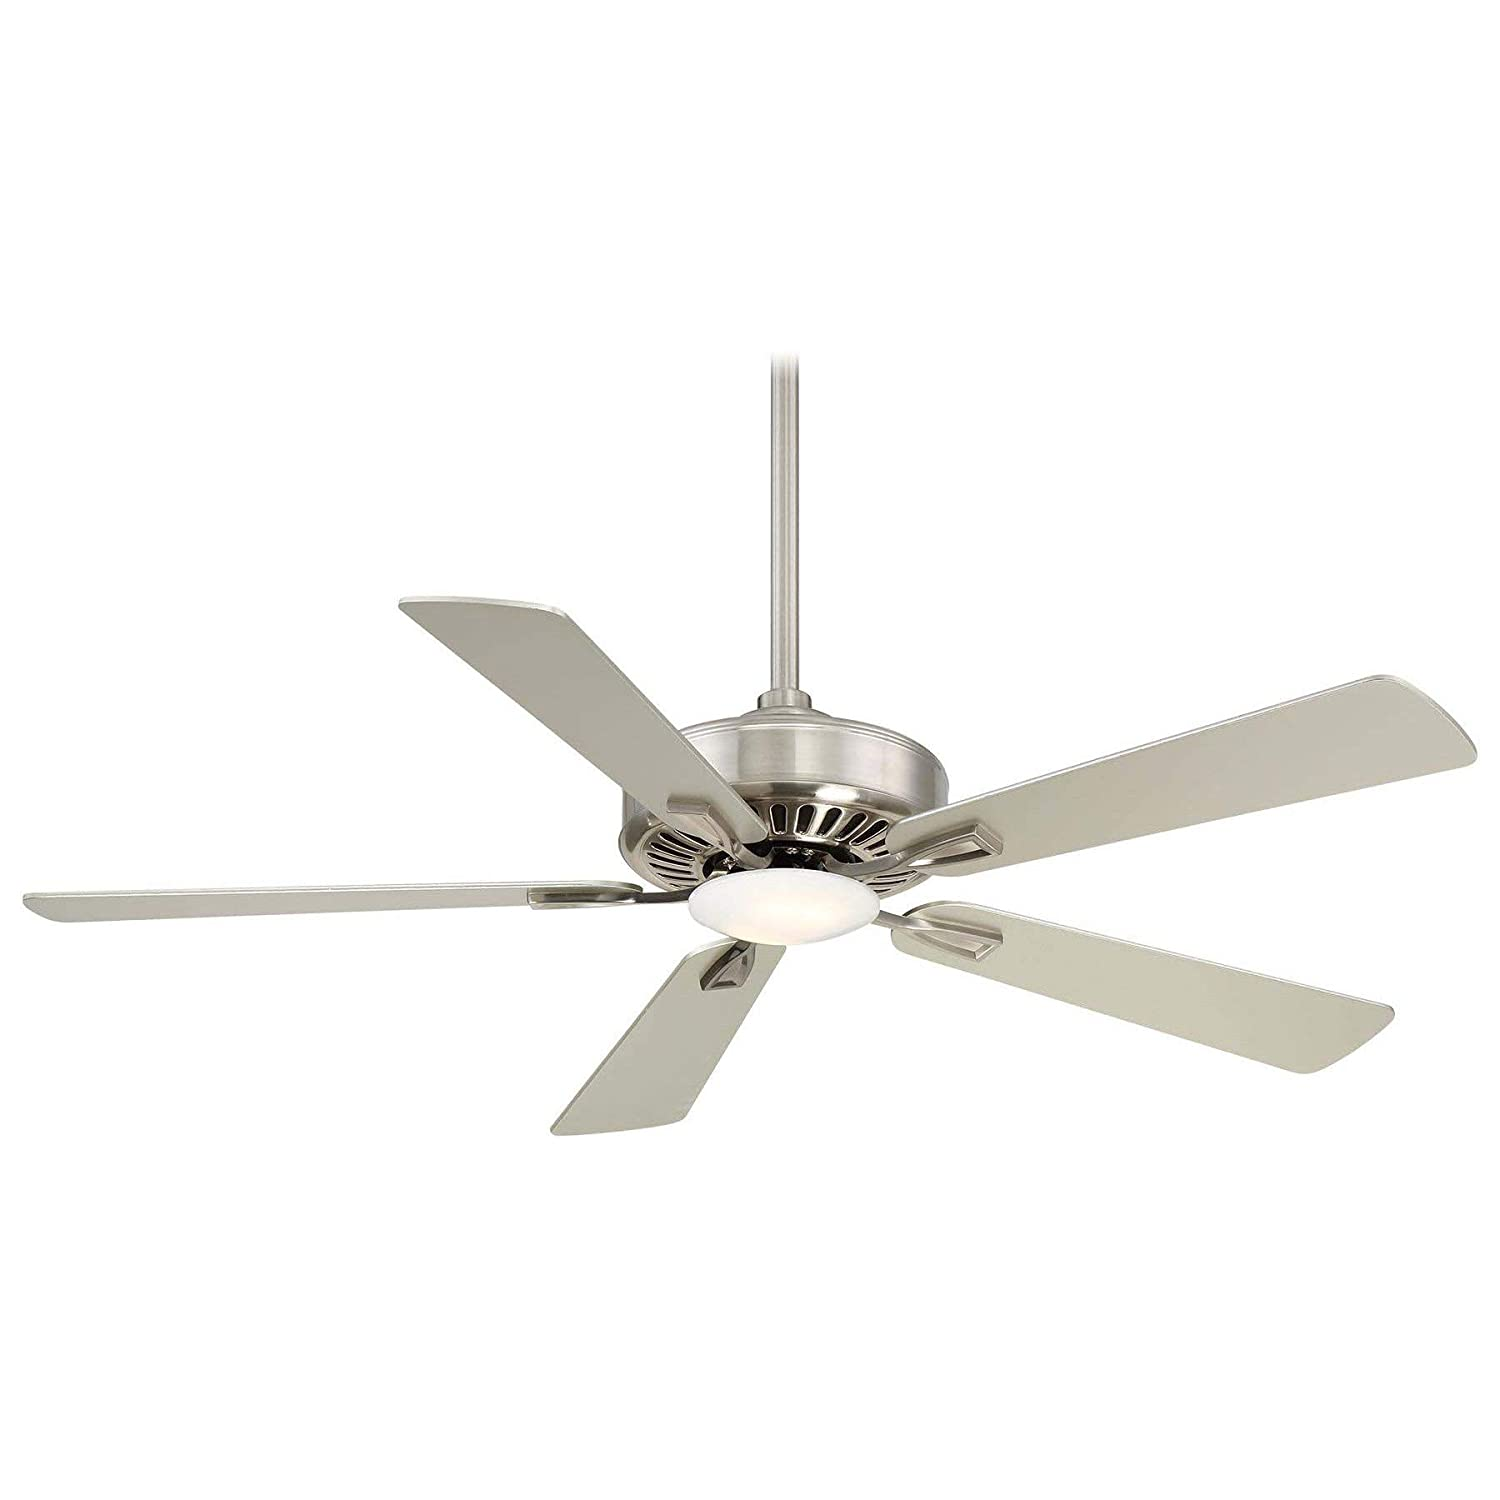 Minka Lavery F556L-BN Protruding Mount, 5 Silver Blades Ceiling fan with 17 watts light, brushed nickel